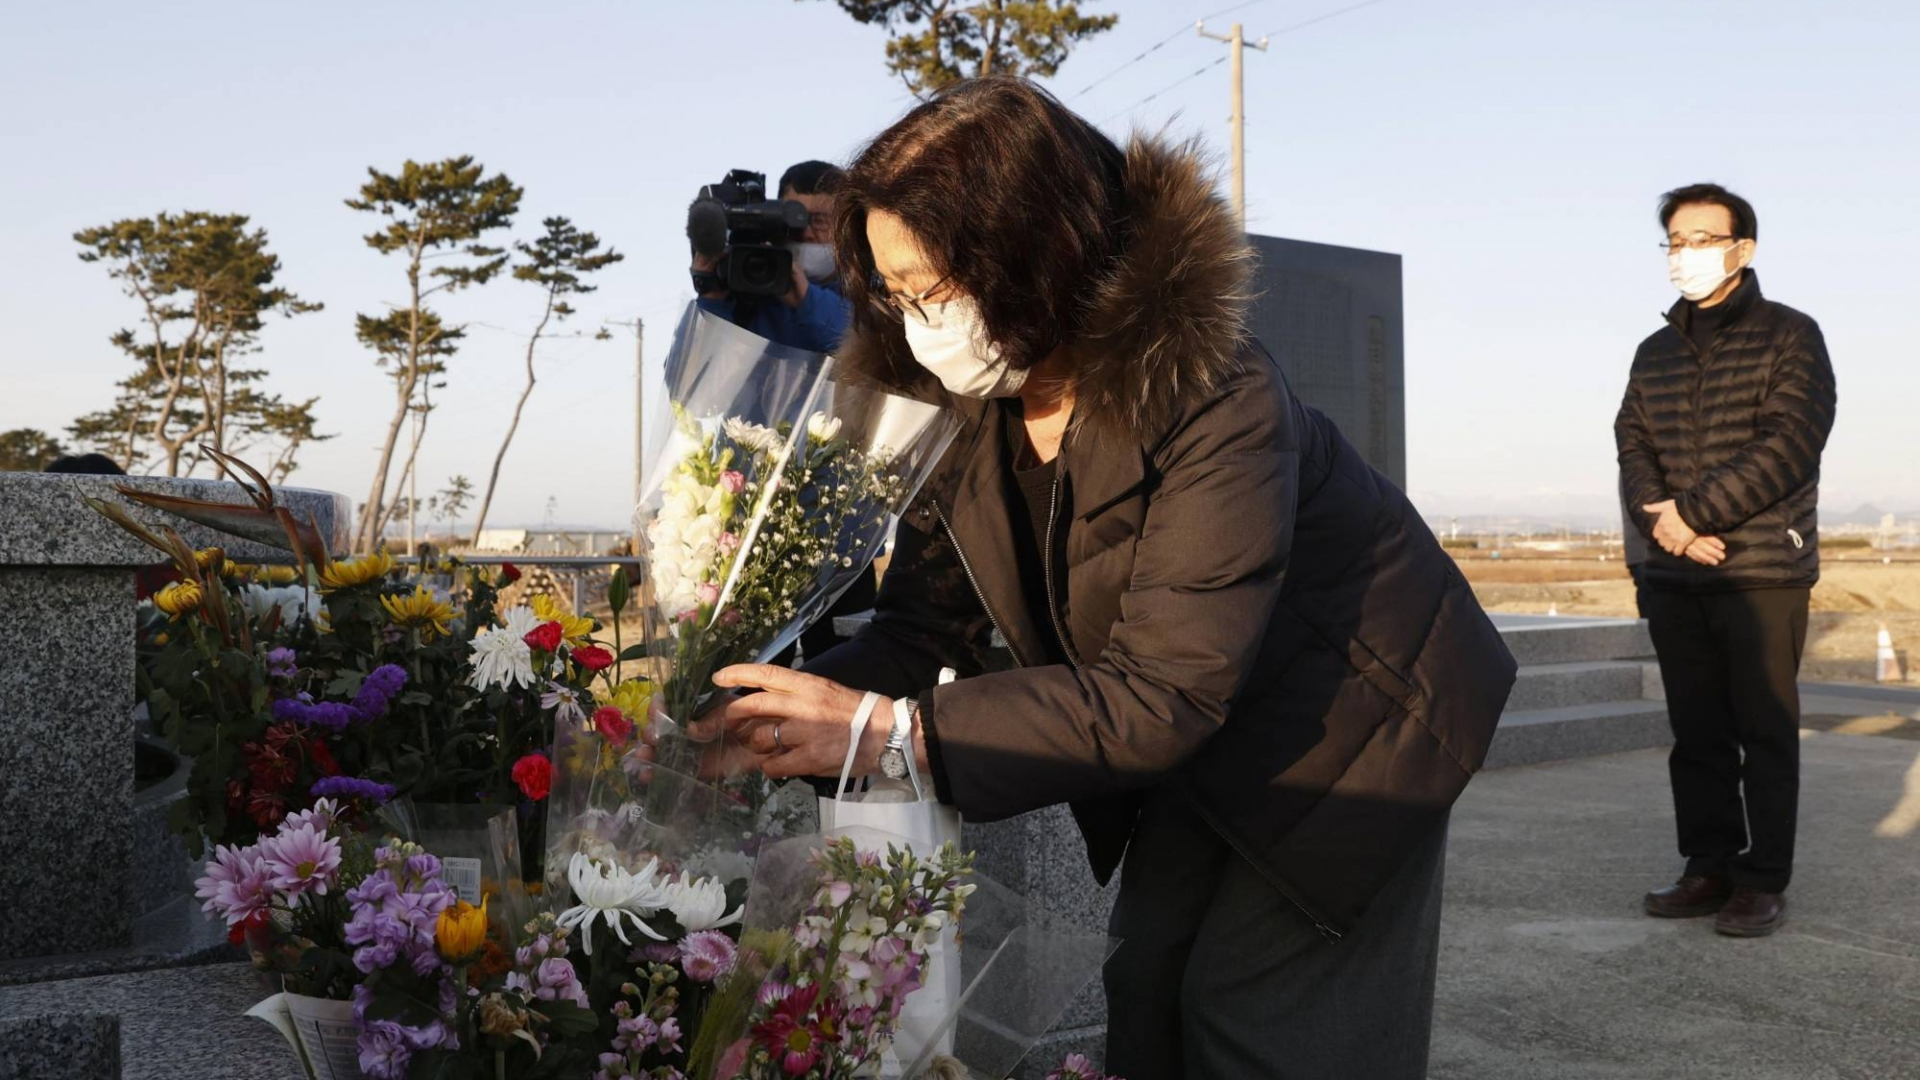 japan mourns lives lost in earthquake and fukushima disaster 10 years ago